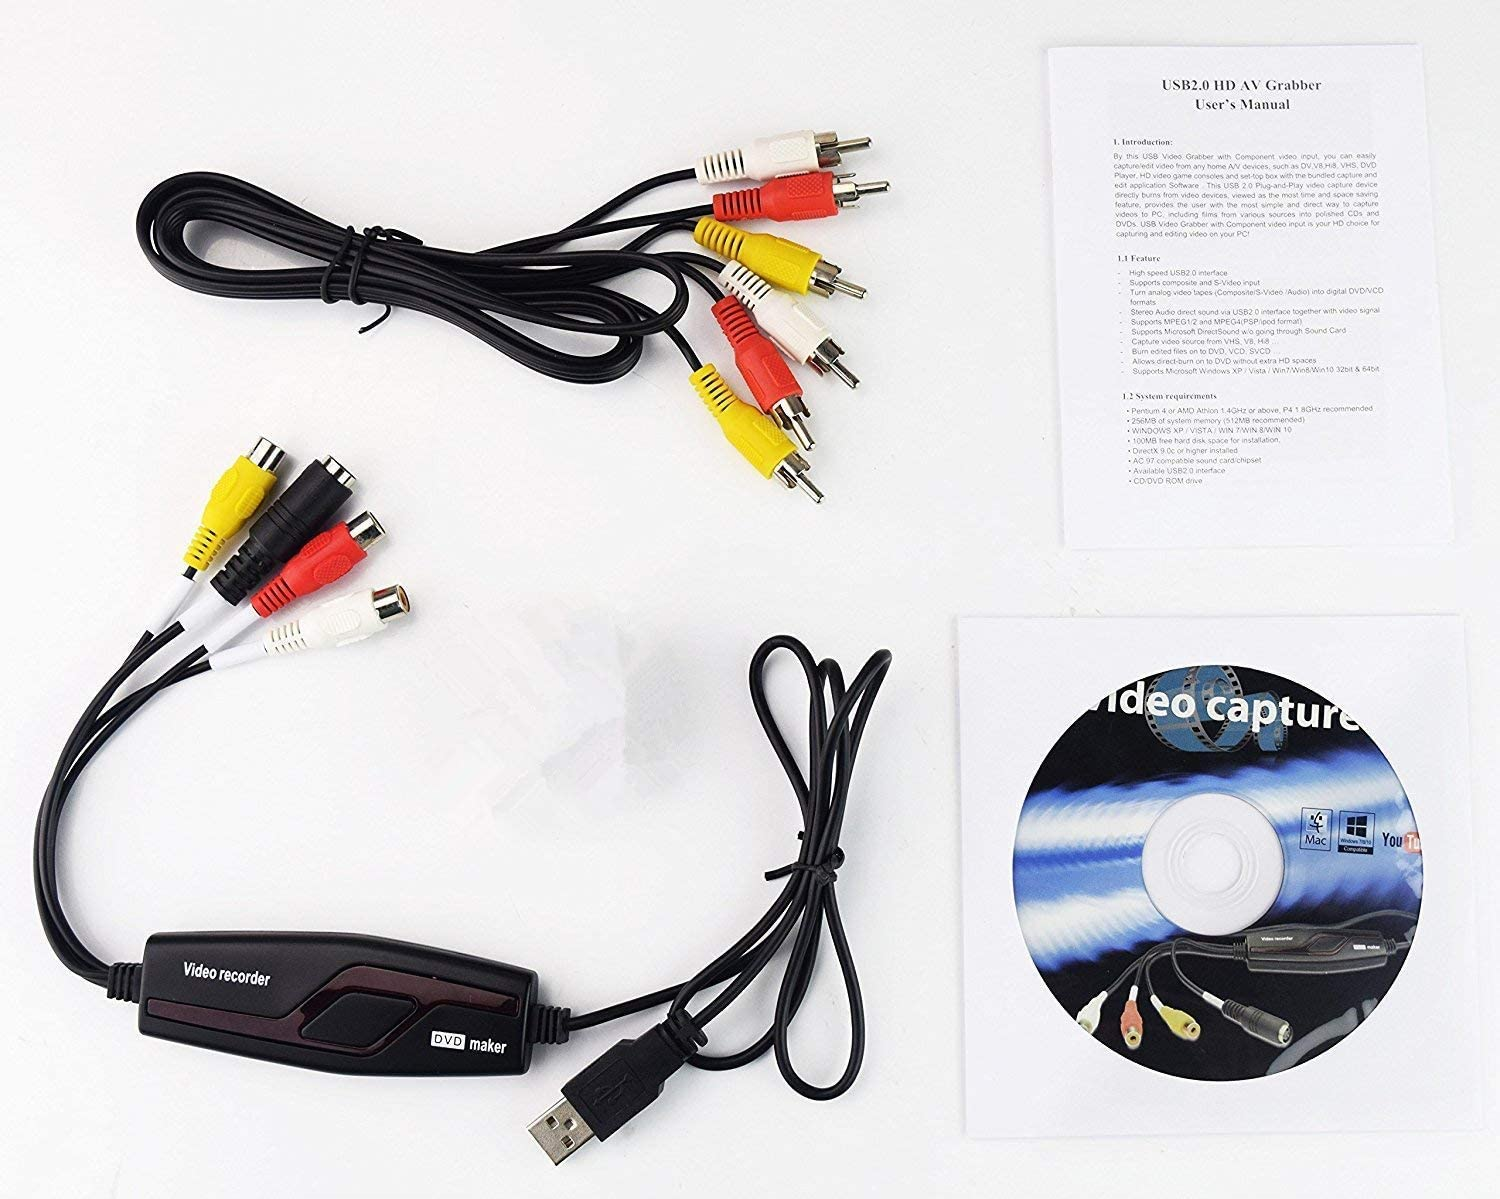 Video Capture Converter, VHS to DVD Capture Analog Video to Digital for Mac or Windows 10 PC: Home Audio & Theater